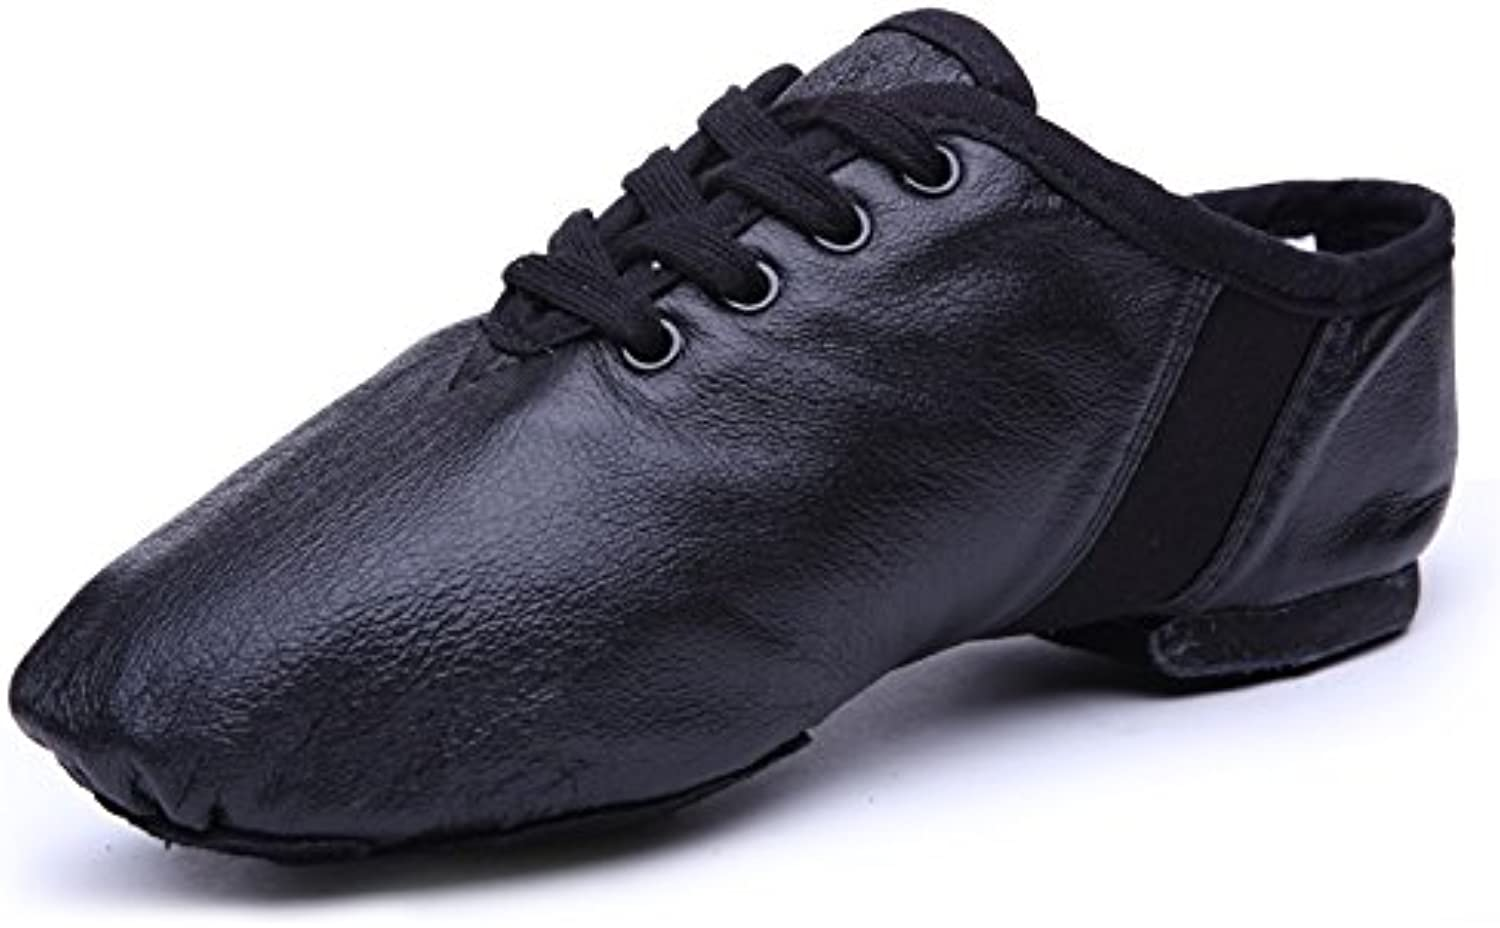 YJiaJu Professional Jazz Dance shoes, Practice Light Weight Jazz Boots Lace Up Leather Boots for Women Men